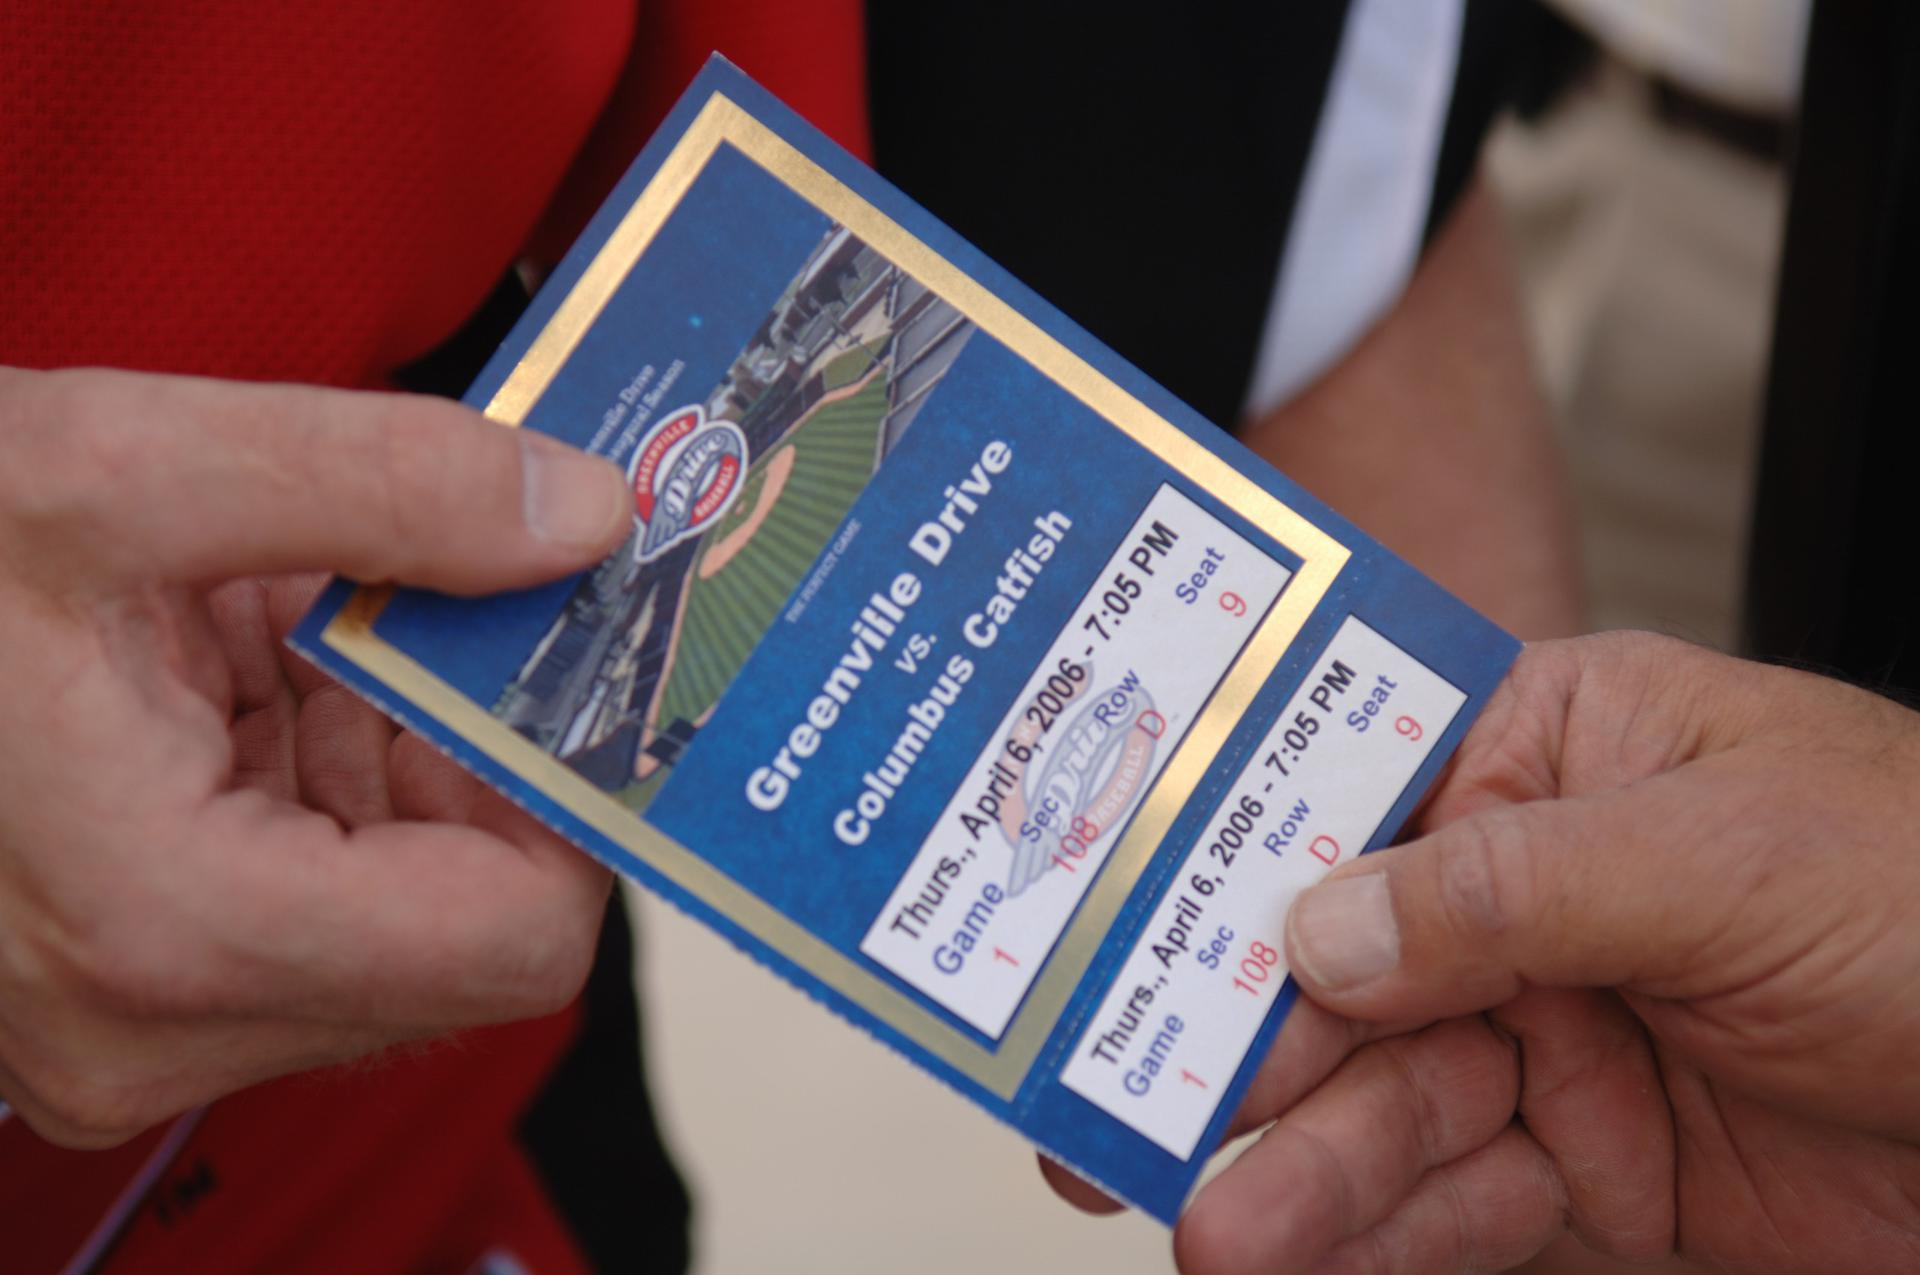 Paper ticket with date, game, and seat information changing hands